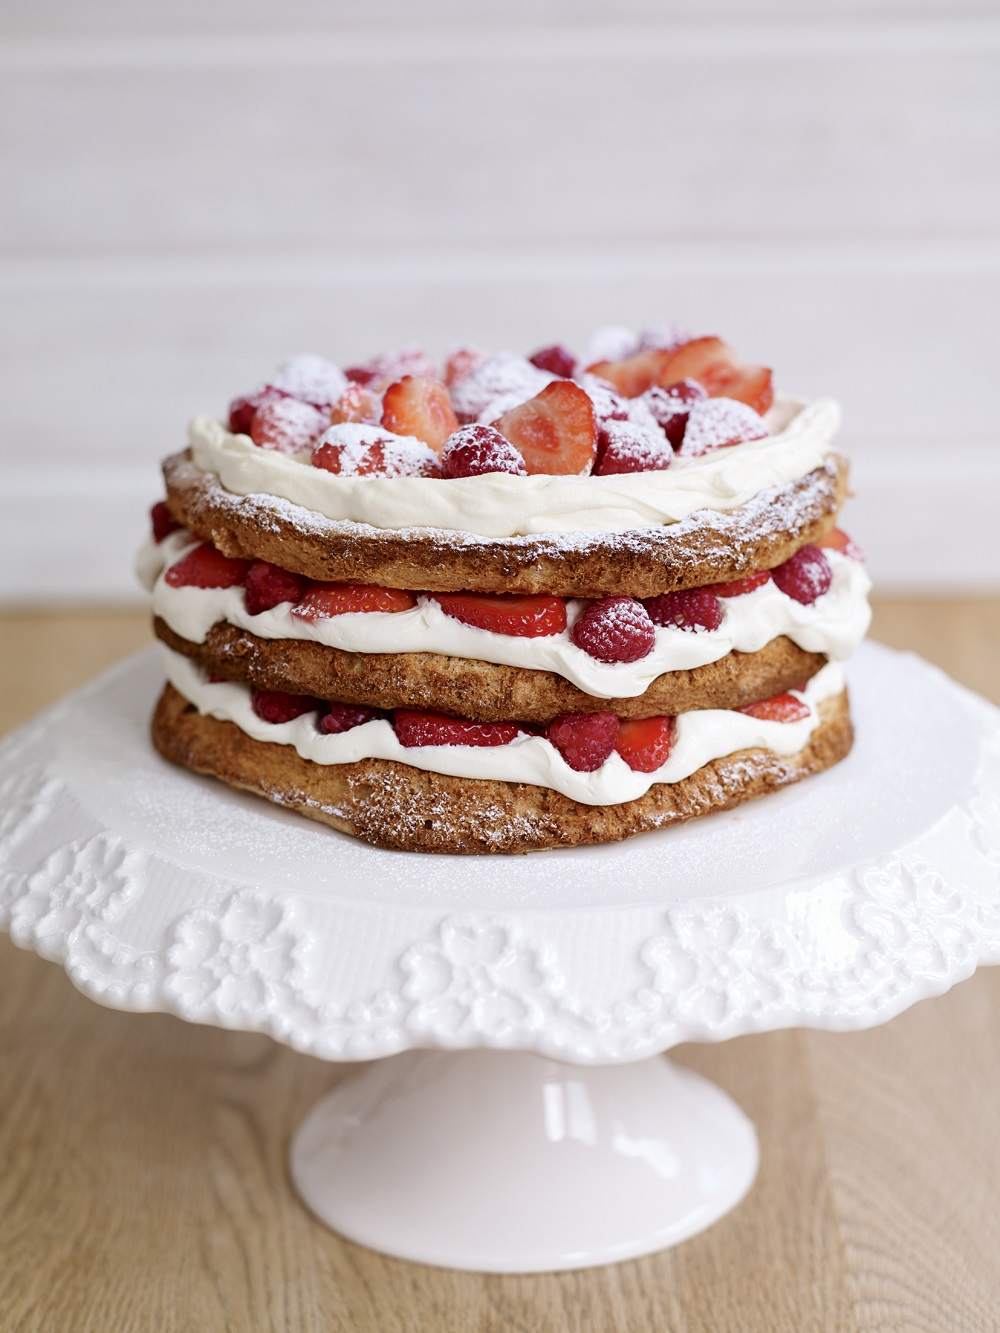 Hazelnut Meringue Layer Cake With Strawberries And Raspberries